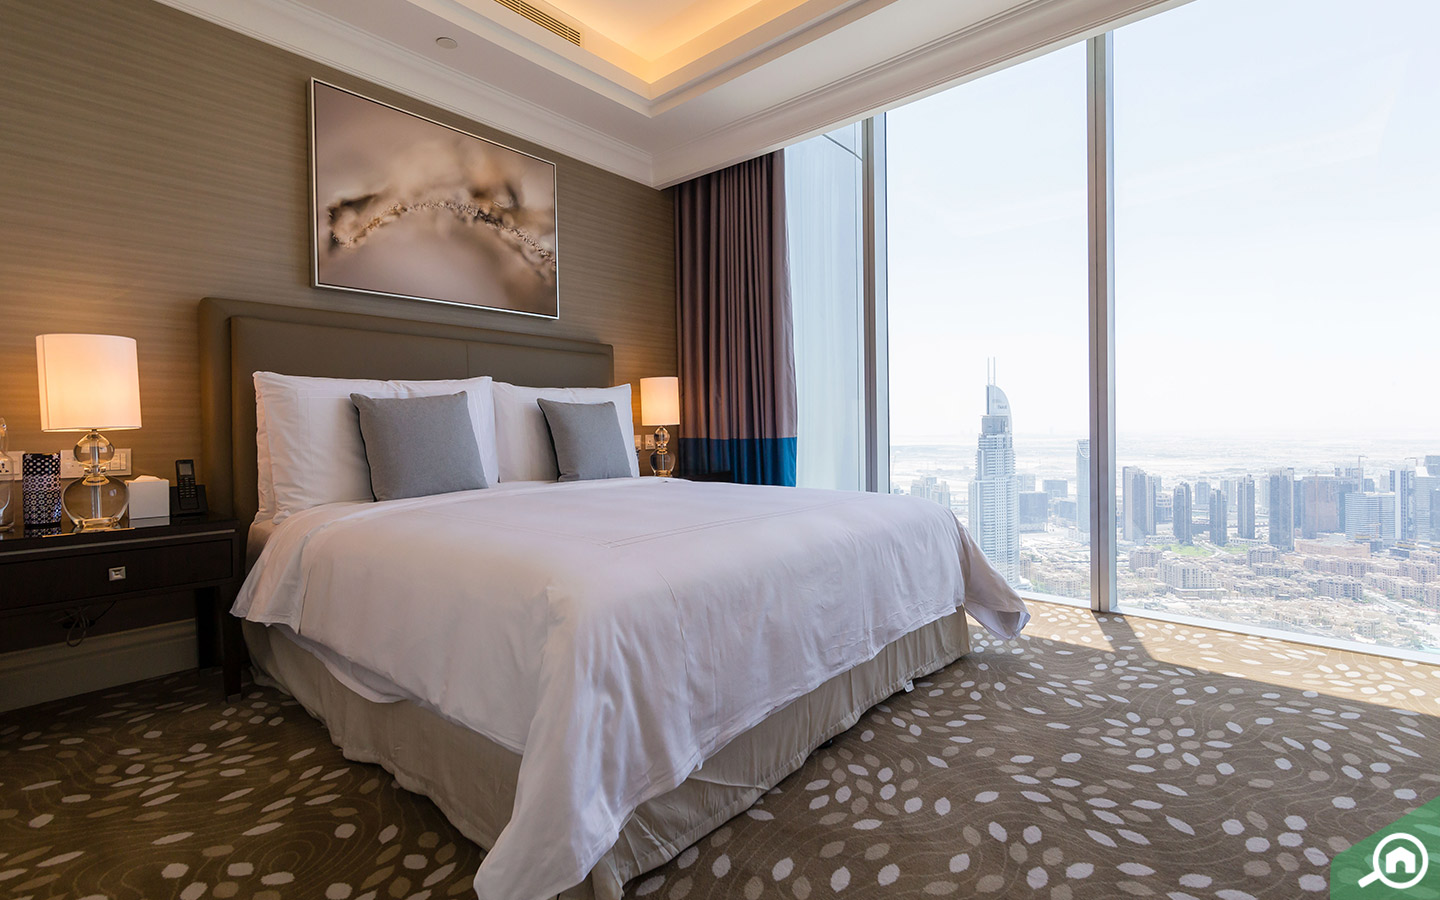 Bedrooms in the penthouse for sale in Downtown Dubai